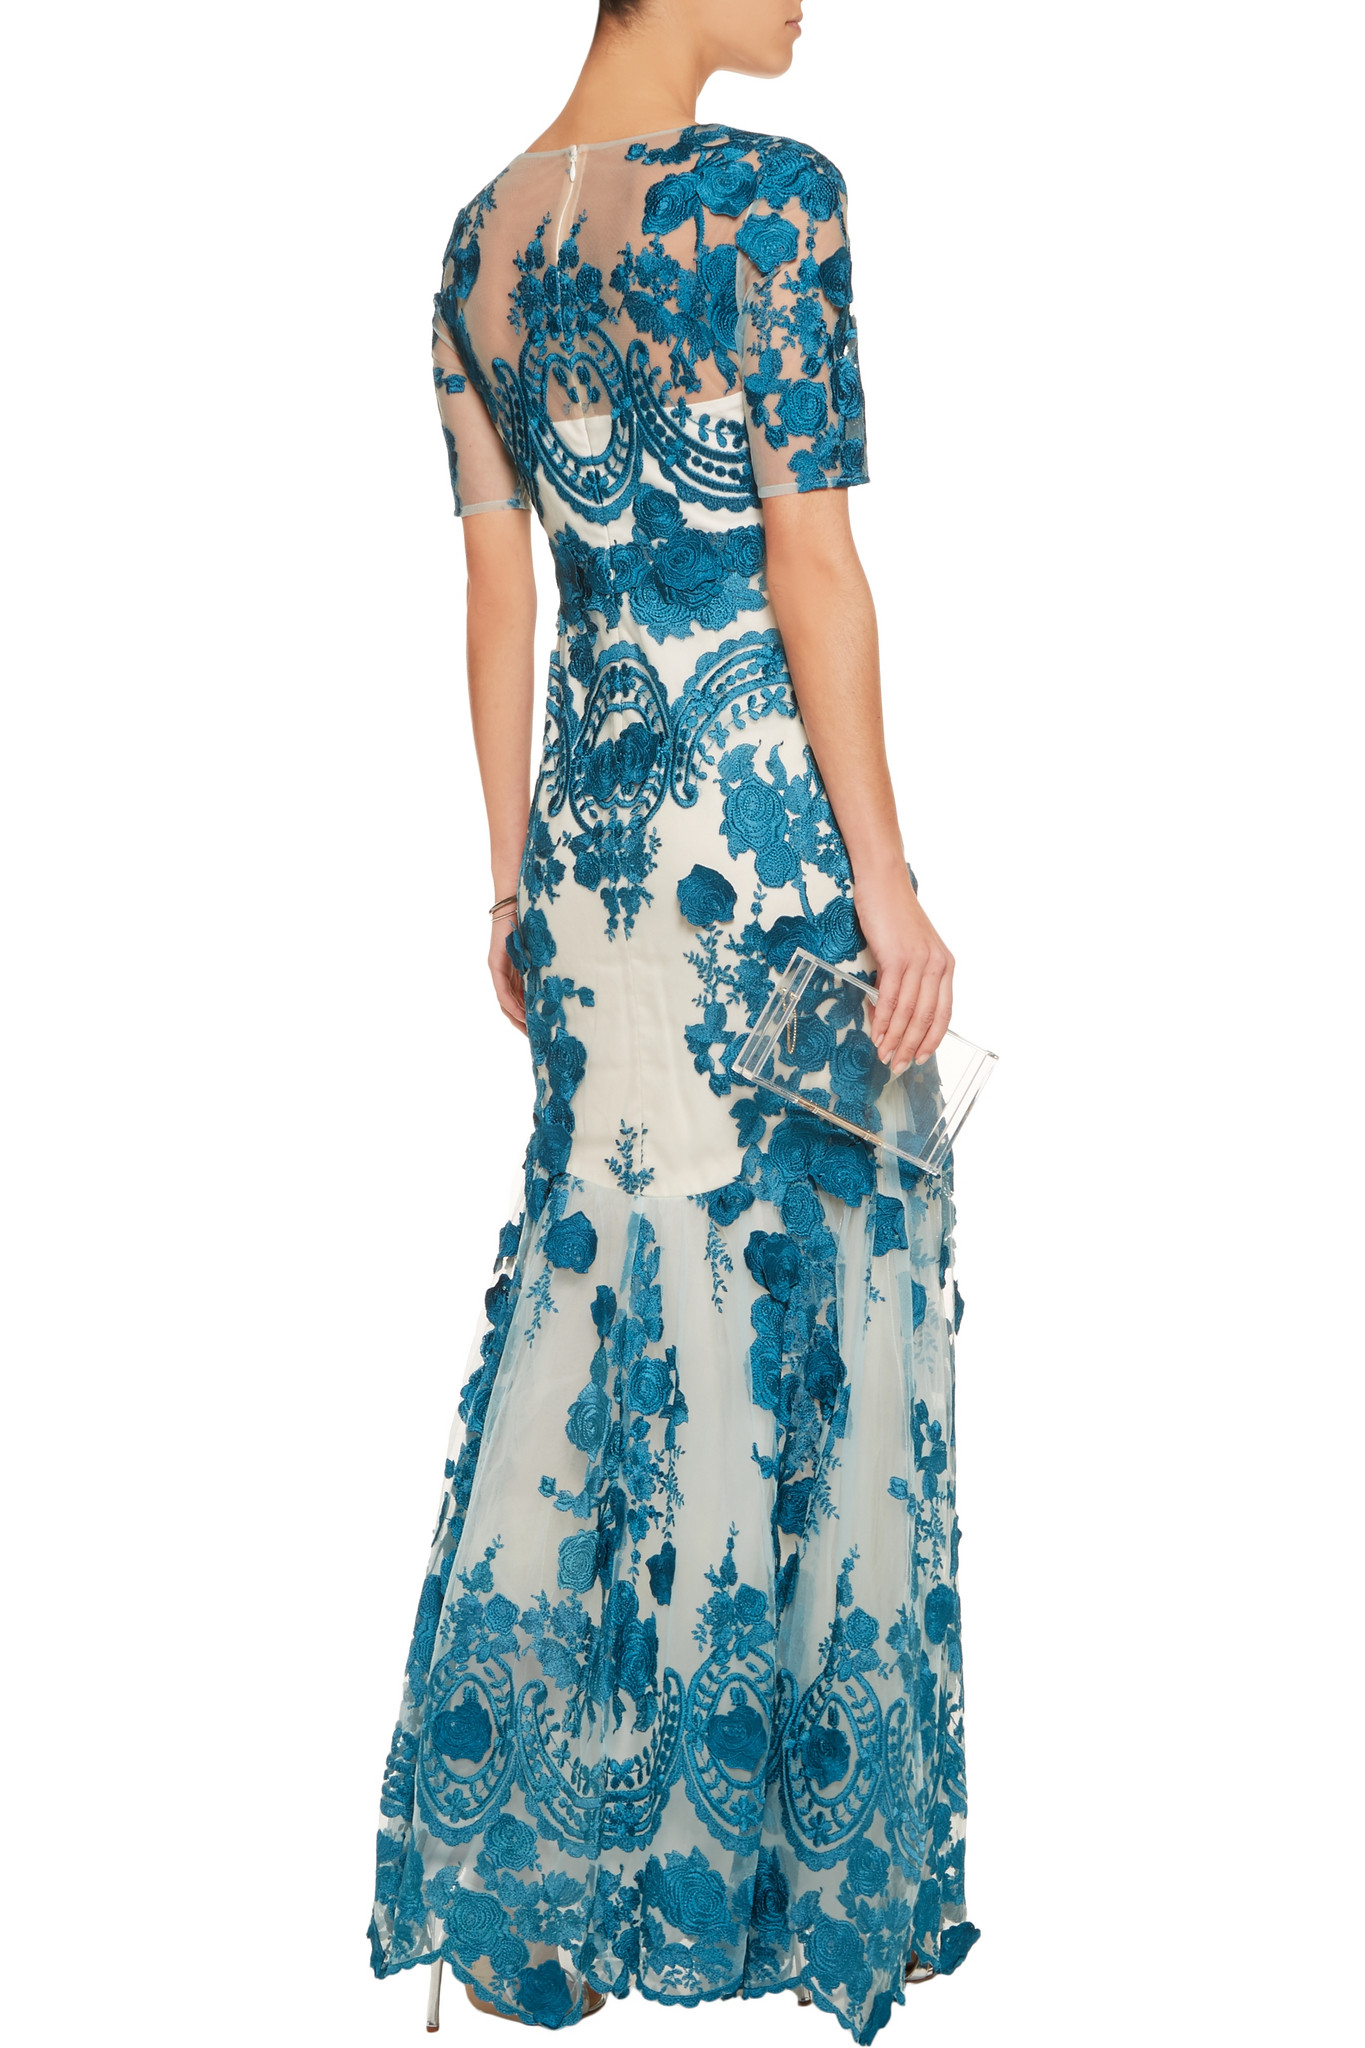 5a9e4d9594c0 Marchesa notte Embroidered Tulle Gown in Blue - Lyst